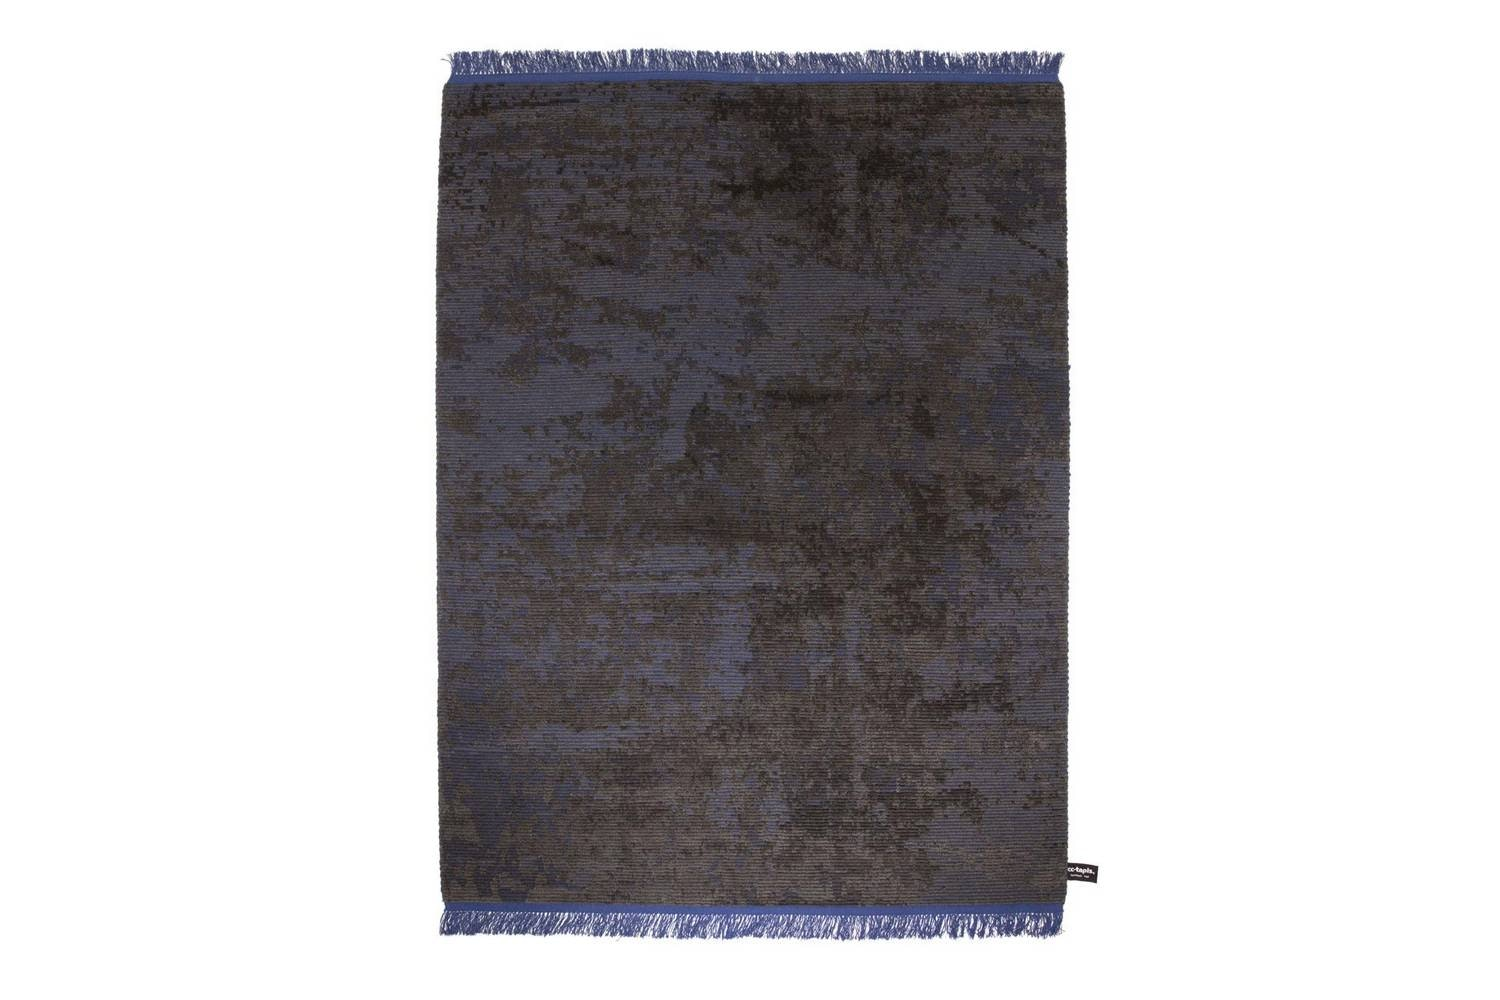 Oldie Full Colour Rug by Oldie Collection for CC-Tapis